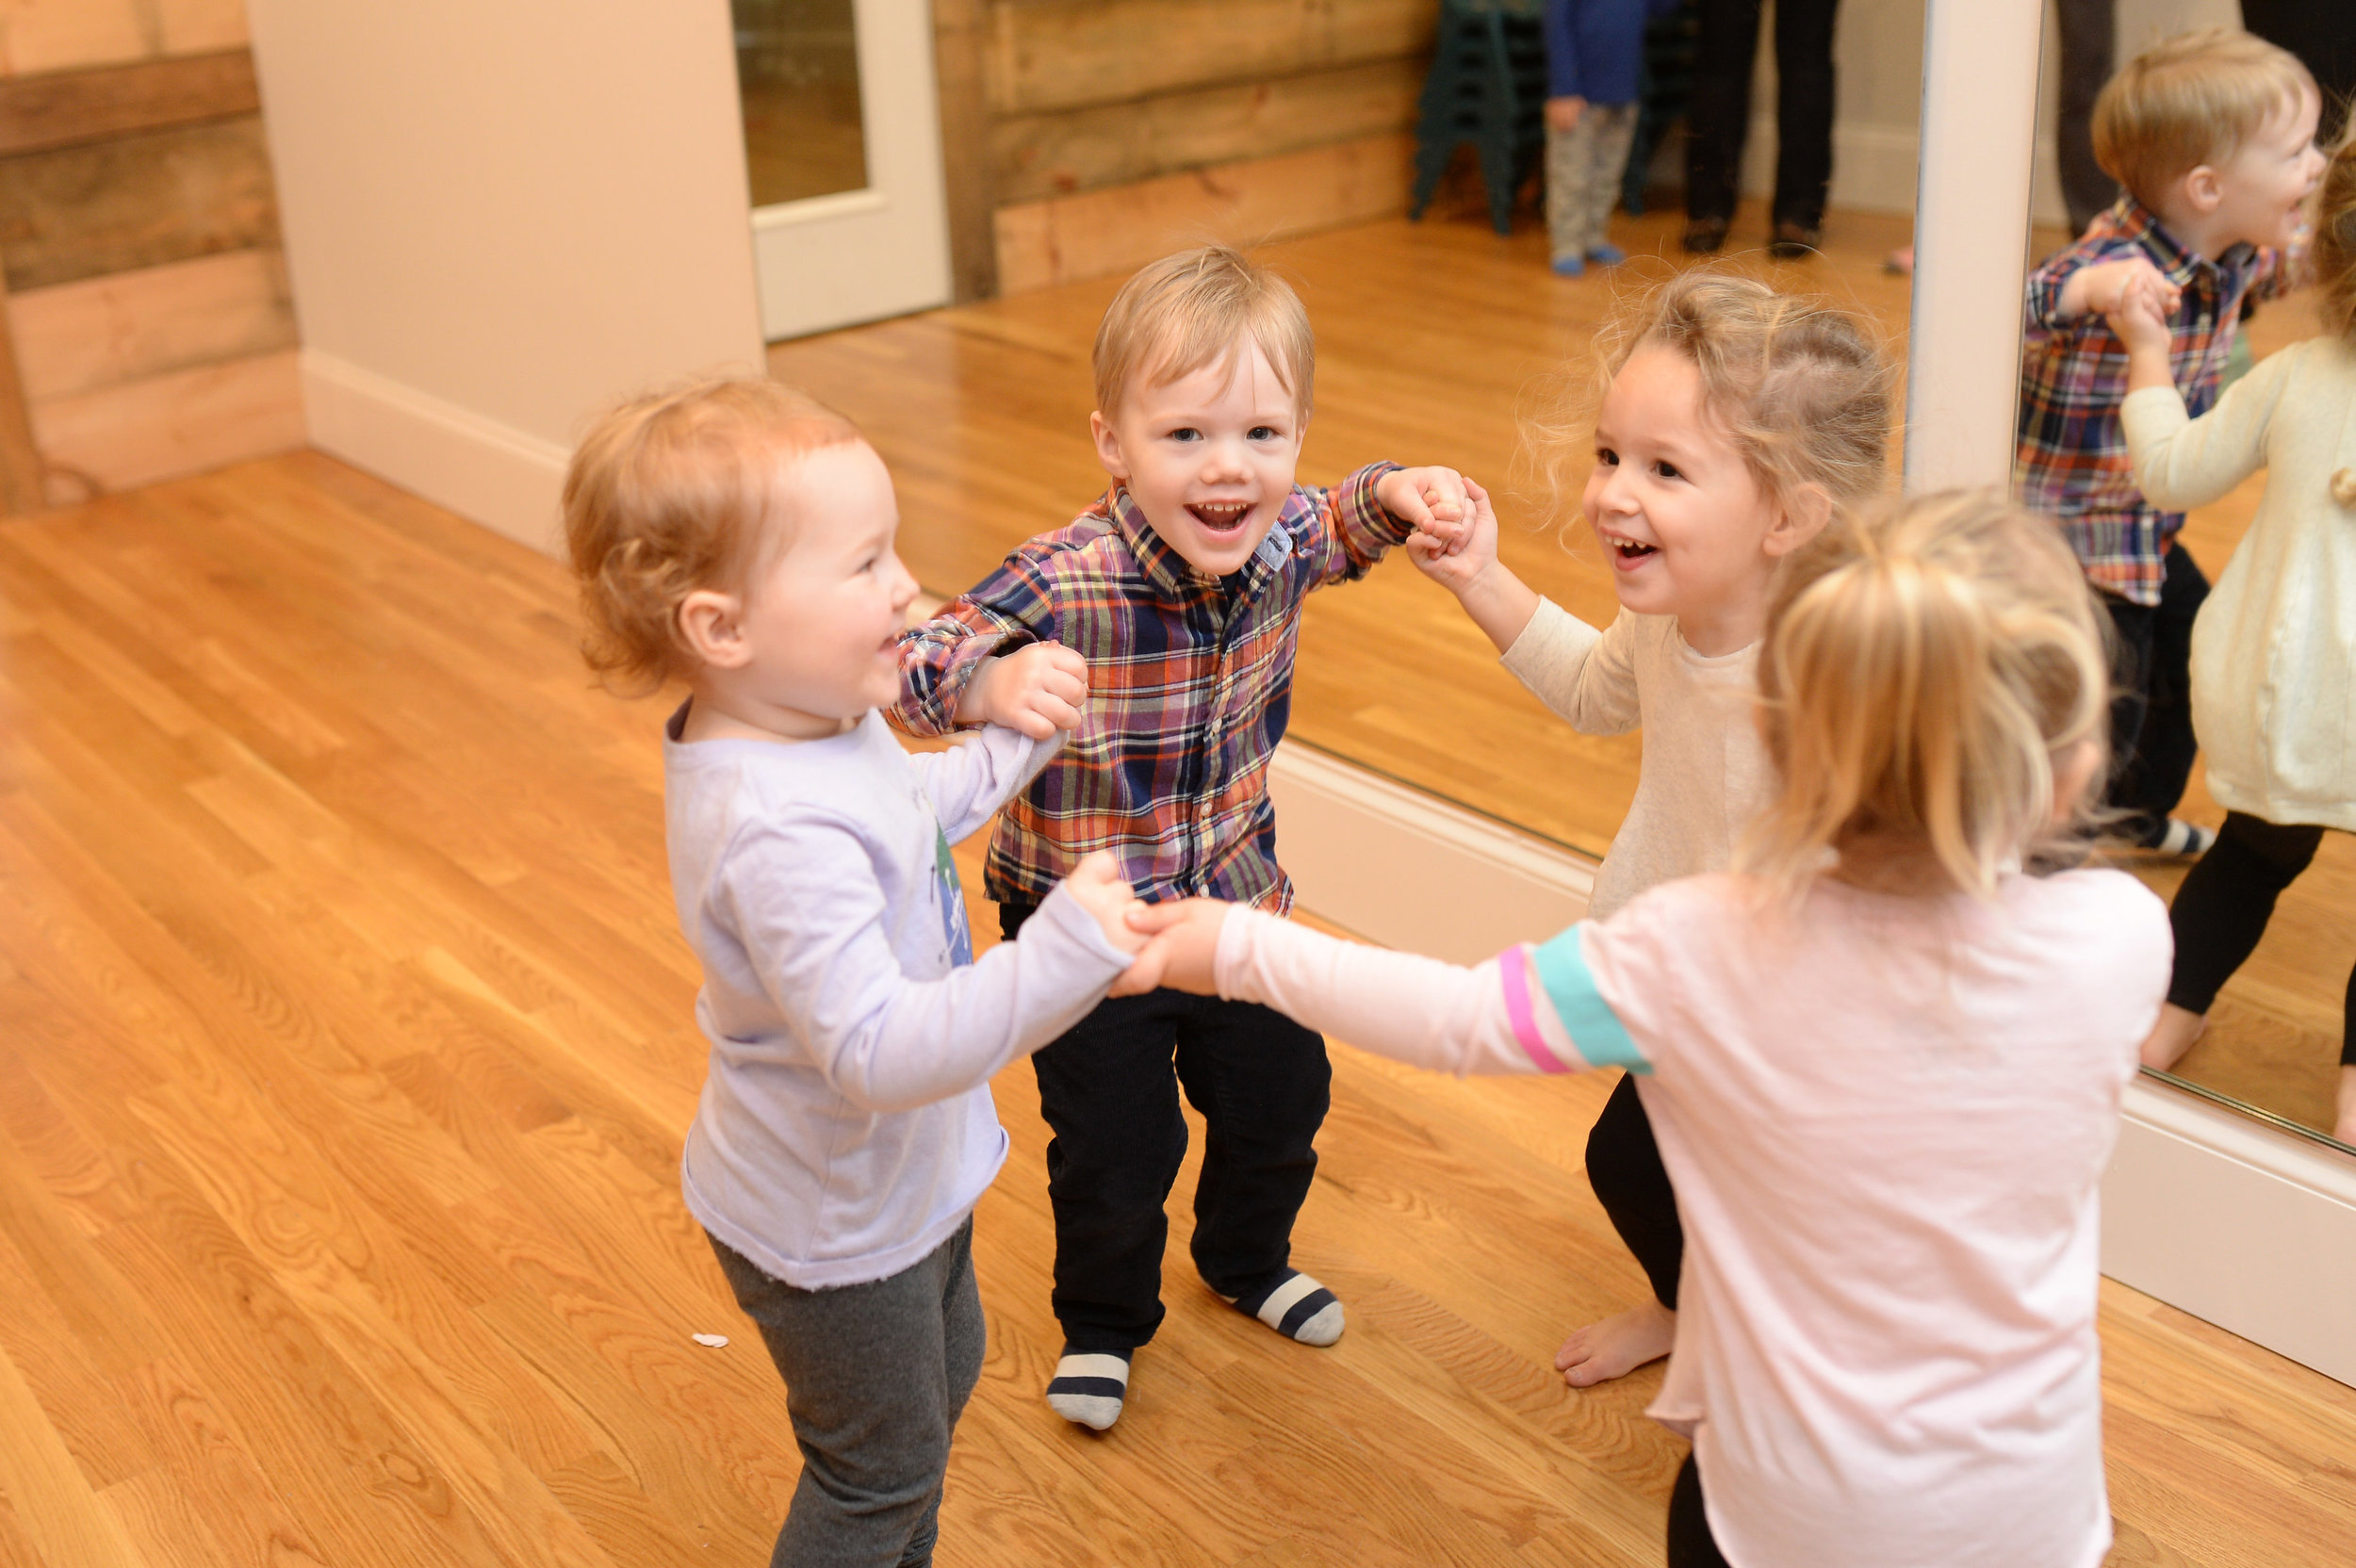 SOUTH BOSTON STUDIO  - KIDS CLASSES | MOM & BABY CLASSES SUPPORT GROUPS | PRENATAL FITNESS